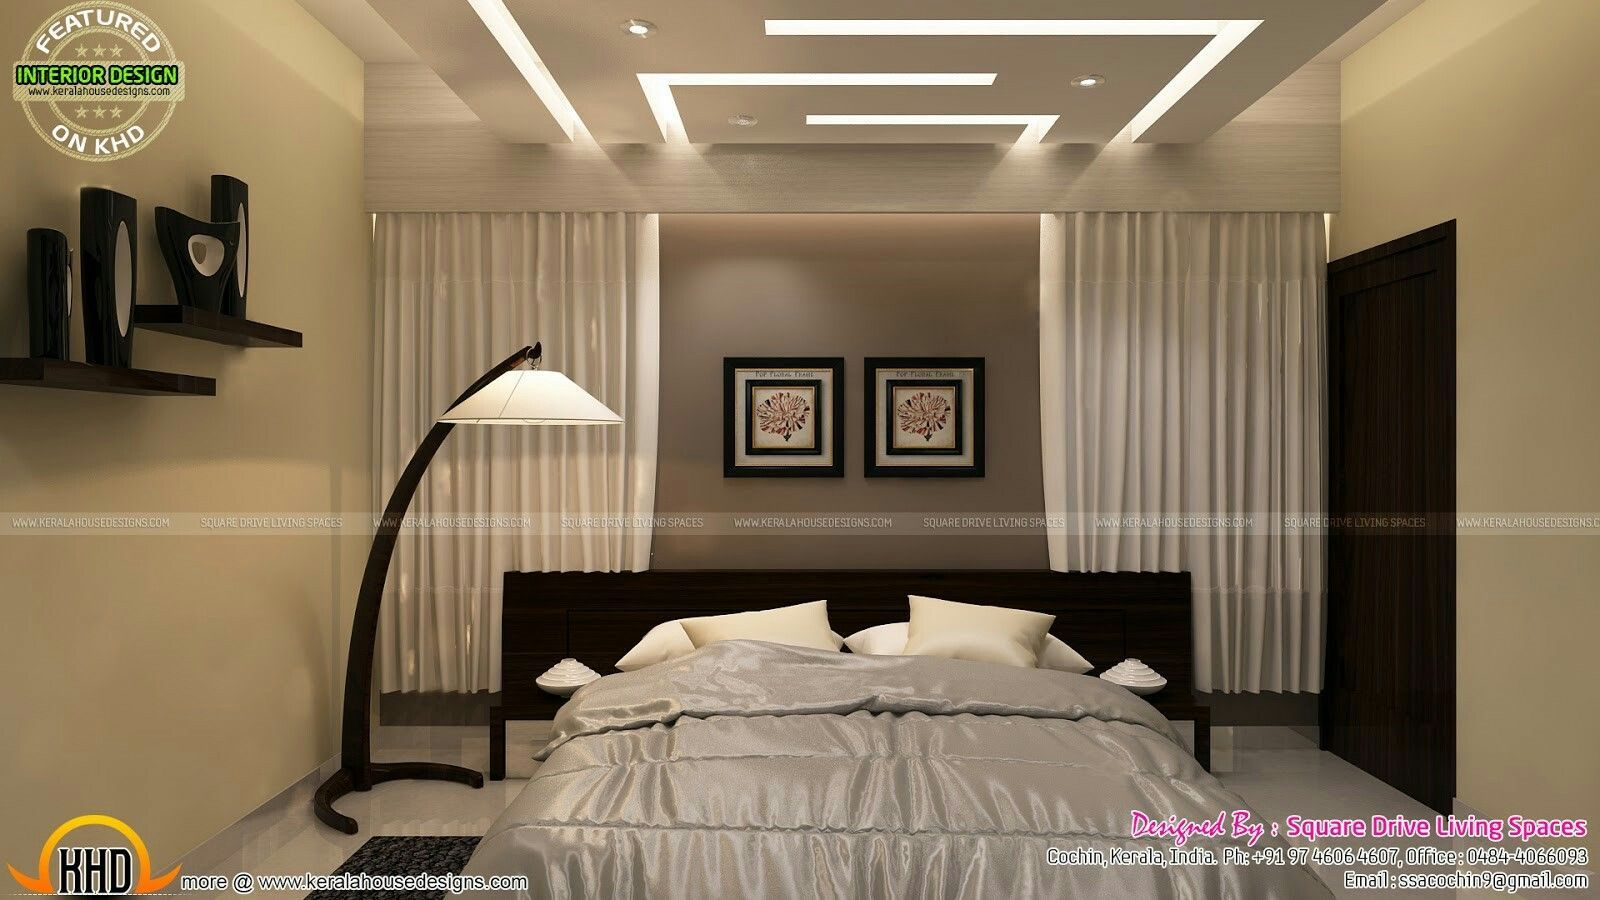 False ceiling design unfinished basements contemporary false ceiling